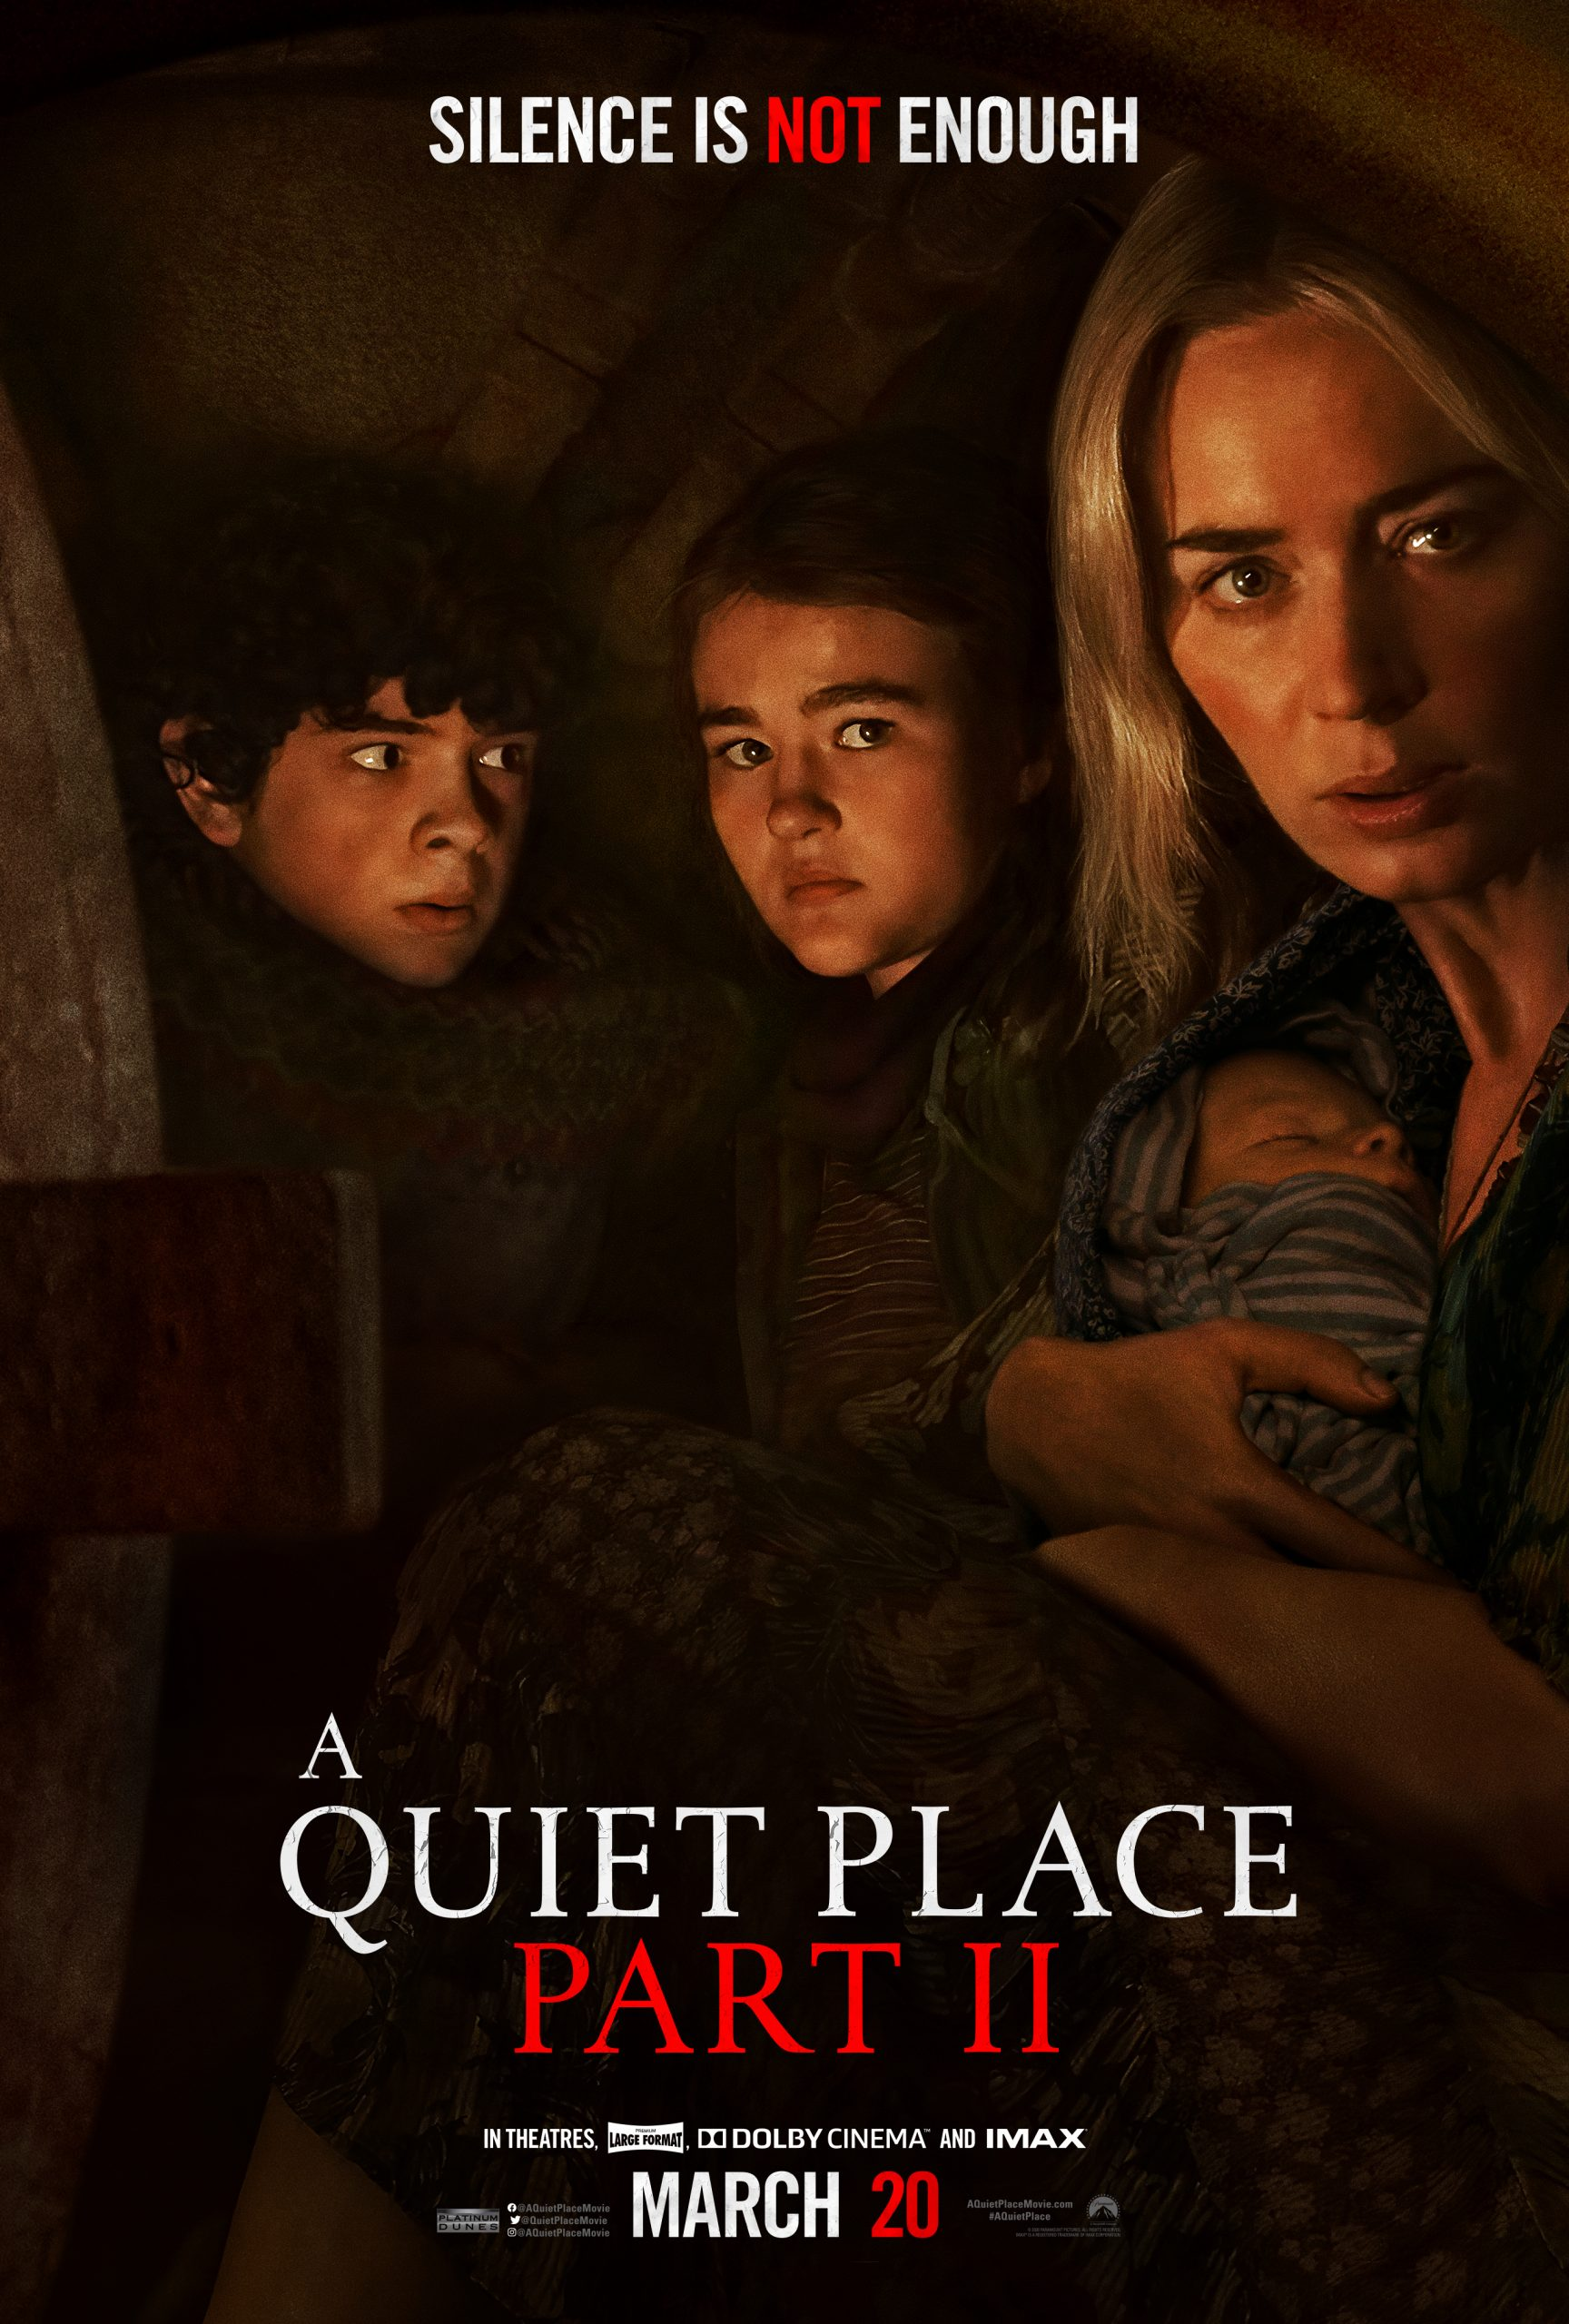 New Movie: A Quiet Place II Starring Emily Blunt